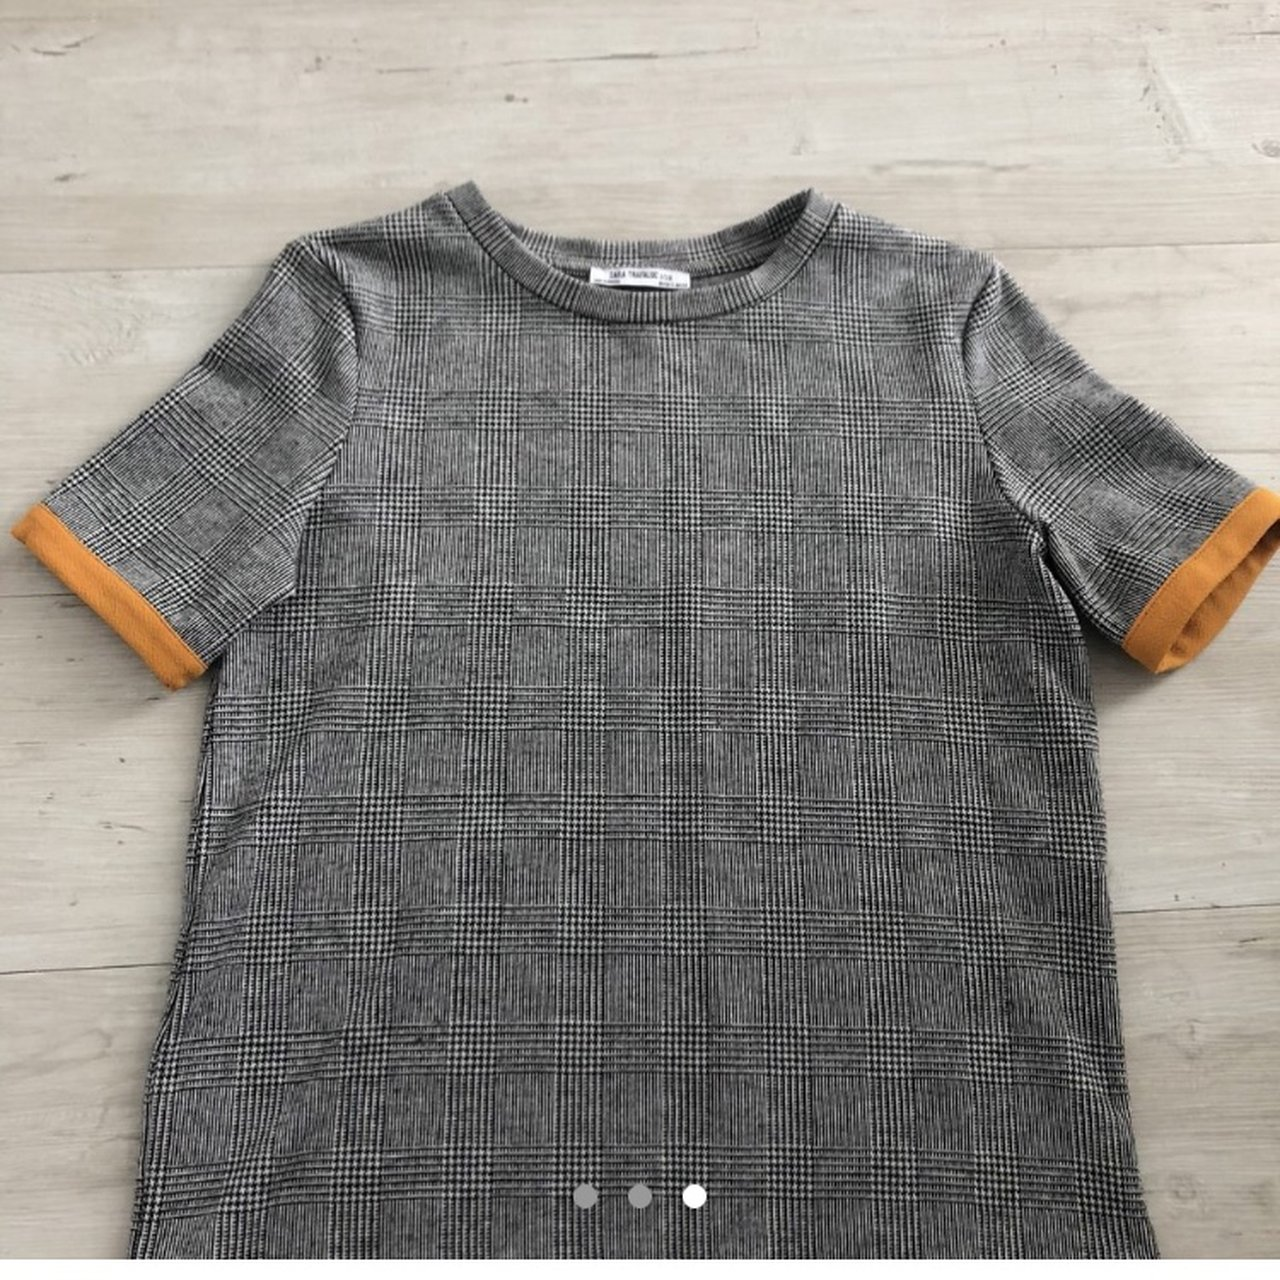 Zara top size small Worn once 5f58d1bc5